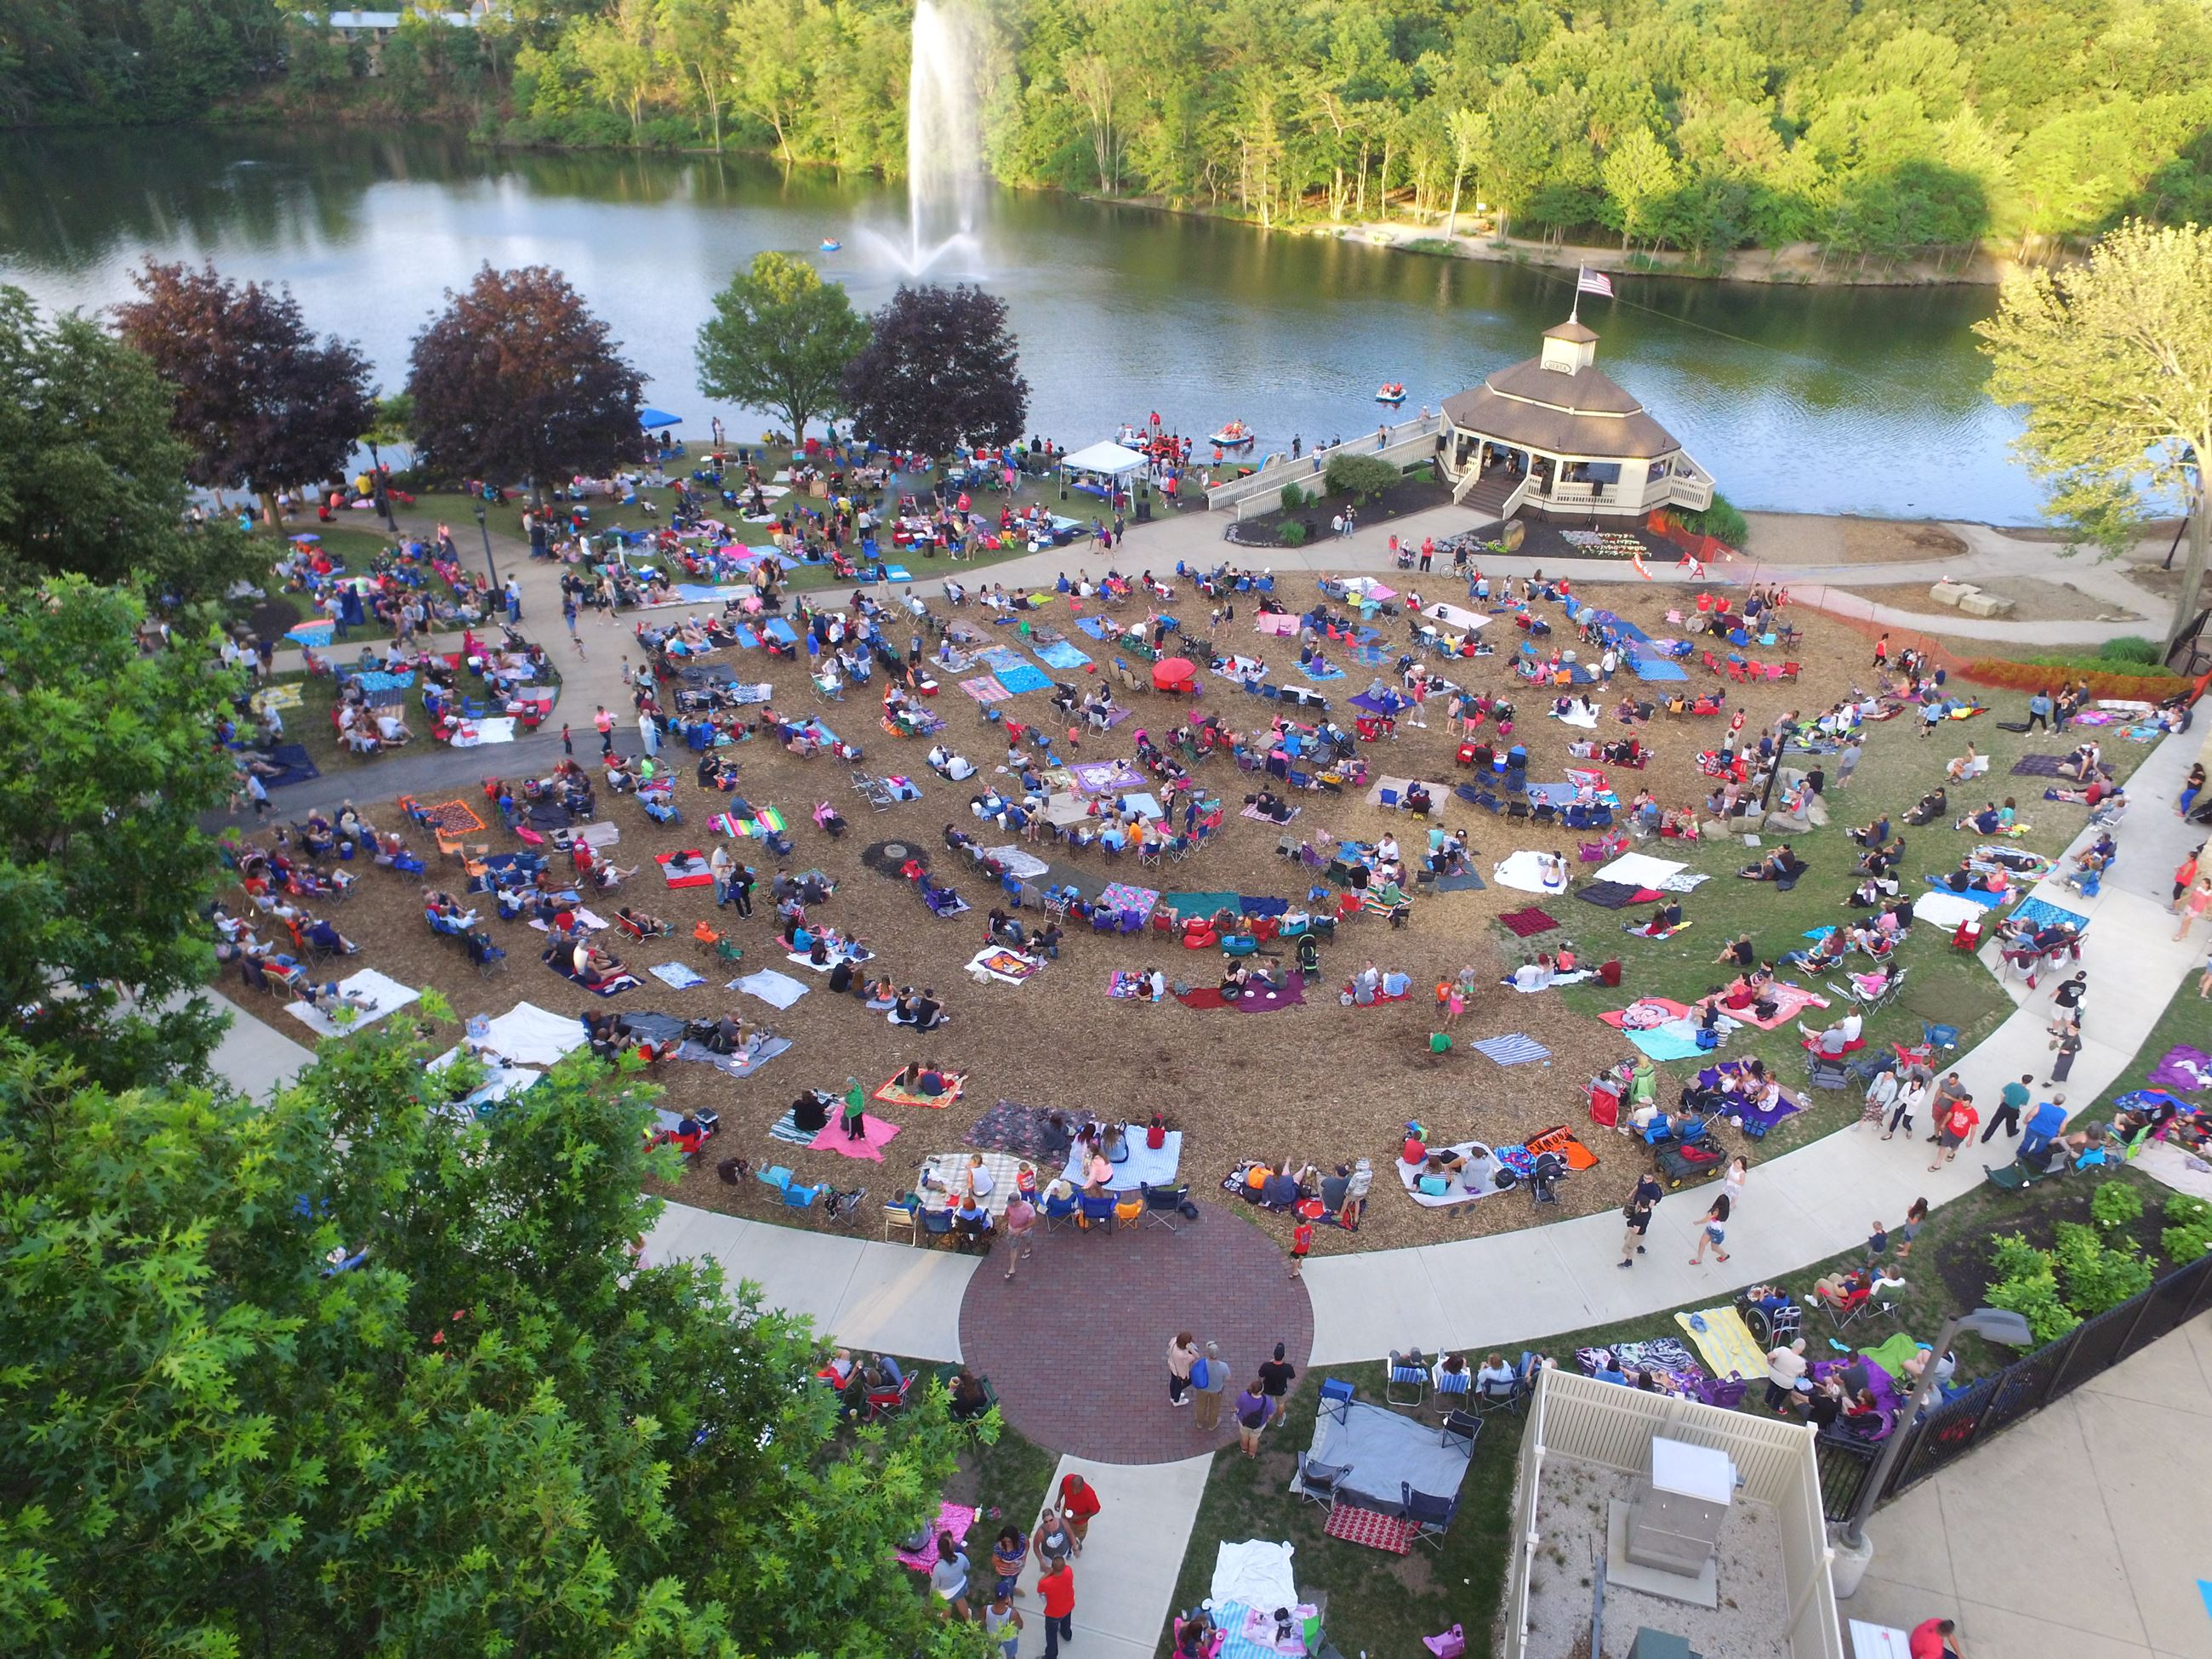 People sitting on the lawn of Coe Lake Park at the Grindstone Festival